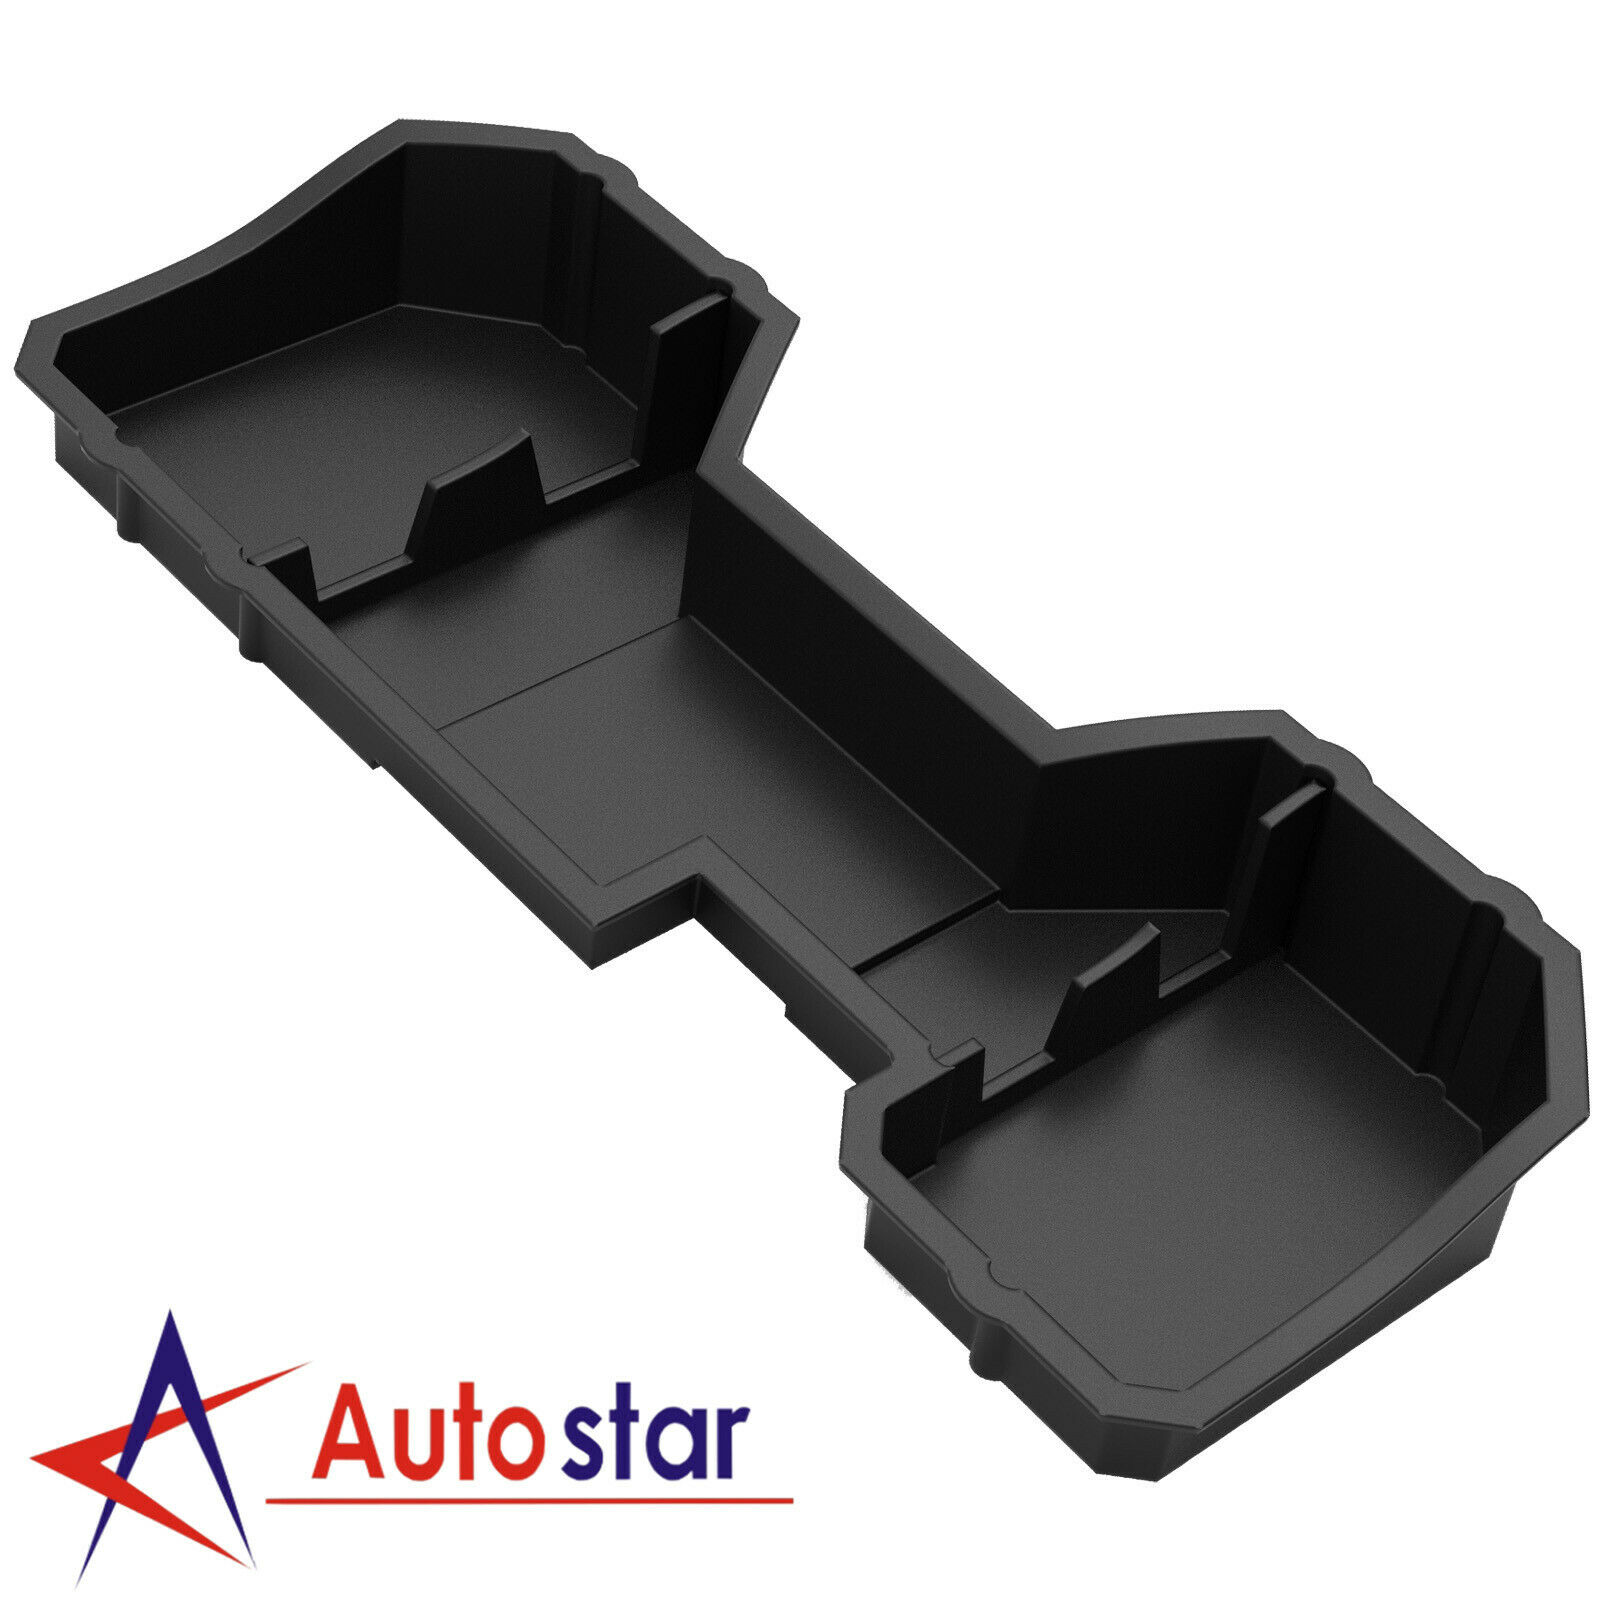 UnderSeat Storage Box Fits For Chevy Silverado 1500 Crew ...